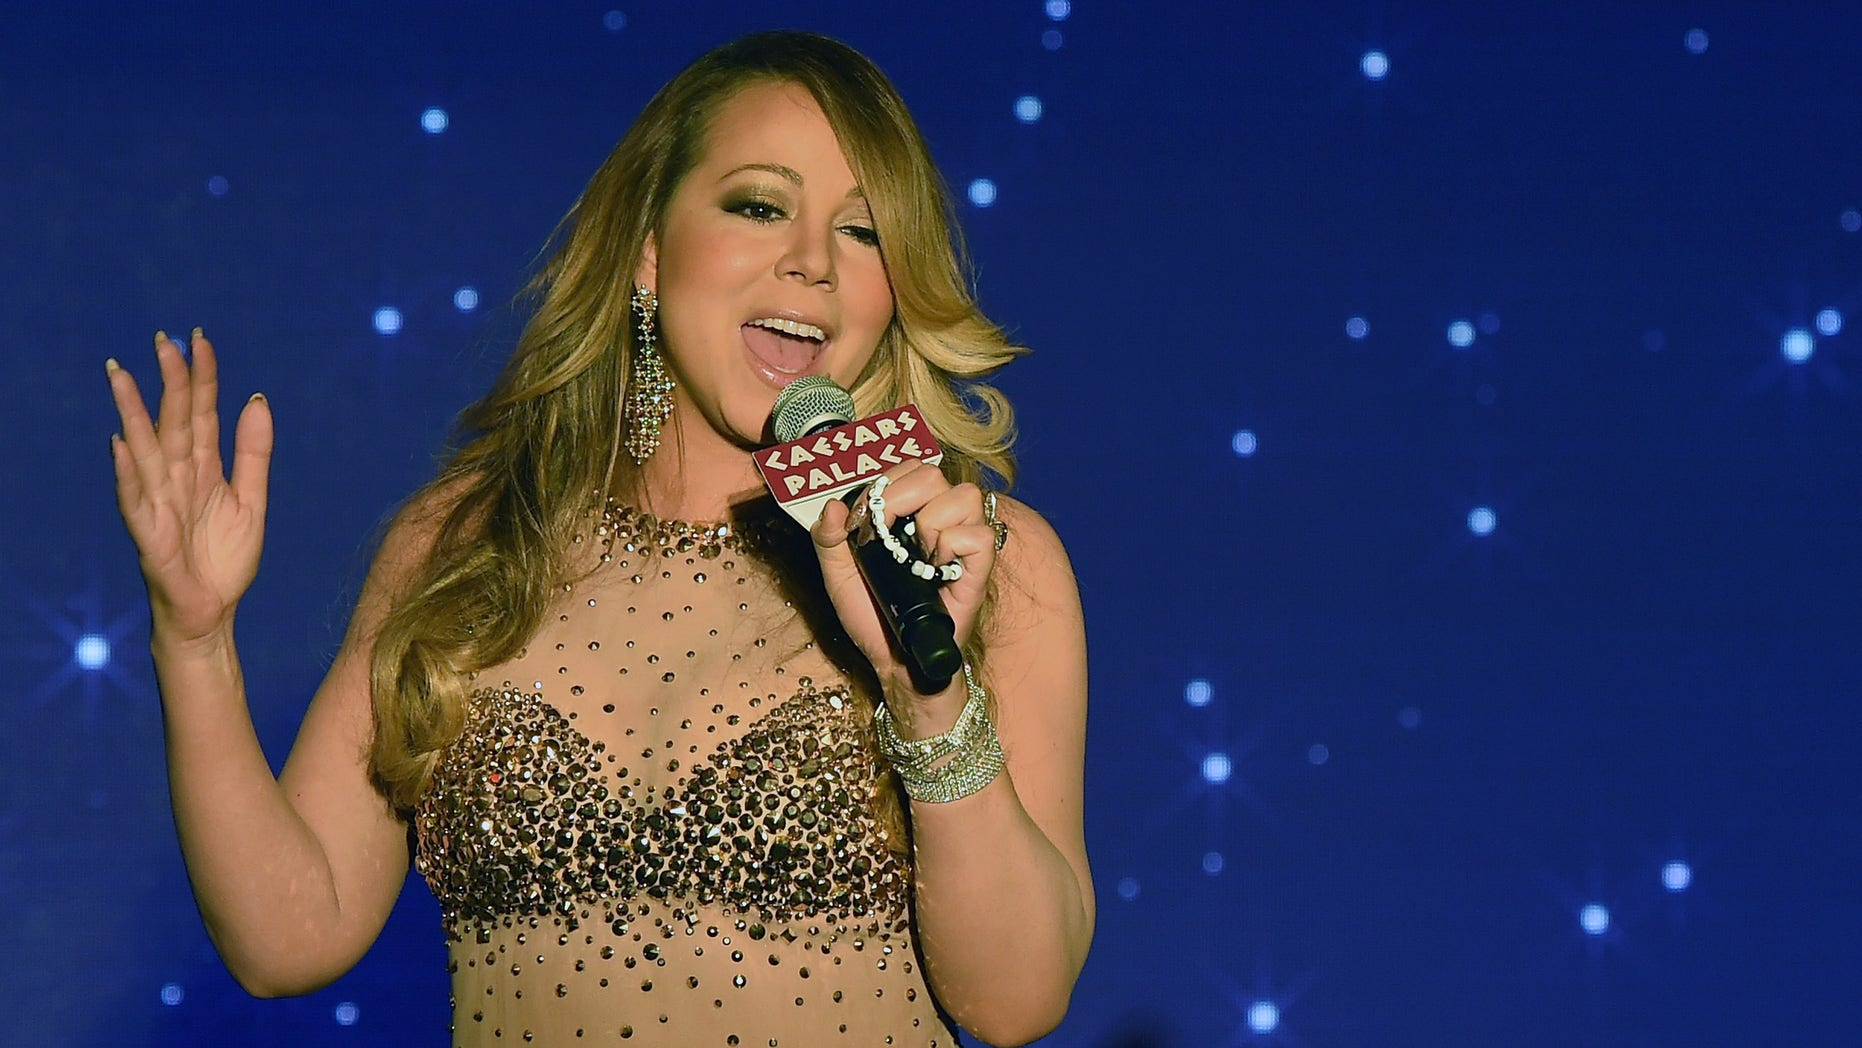 Mariah Carey on April 27, 2015 in Las Vegas, Nevada.